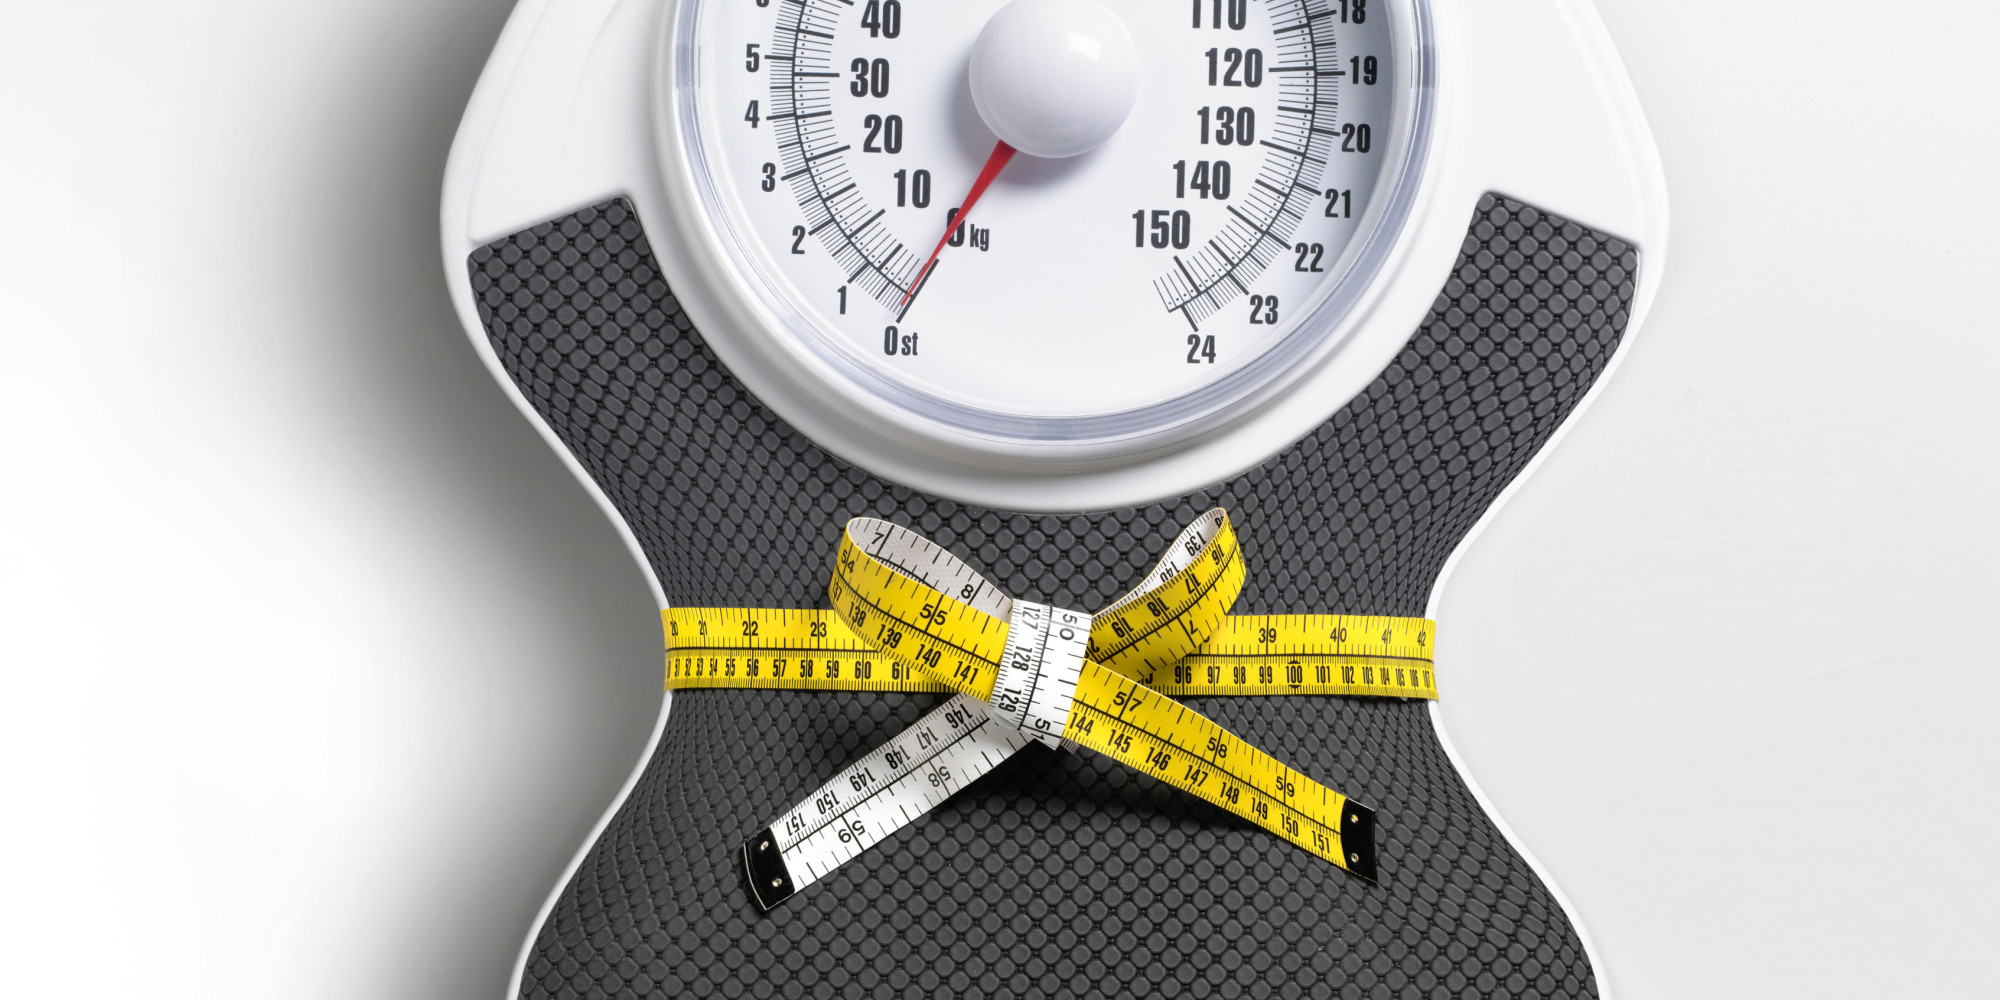 LoseWeight.CutDownOnScreenTime Weight Management:  Cut Down On Screen Time